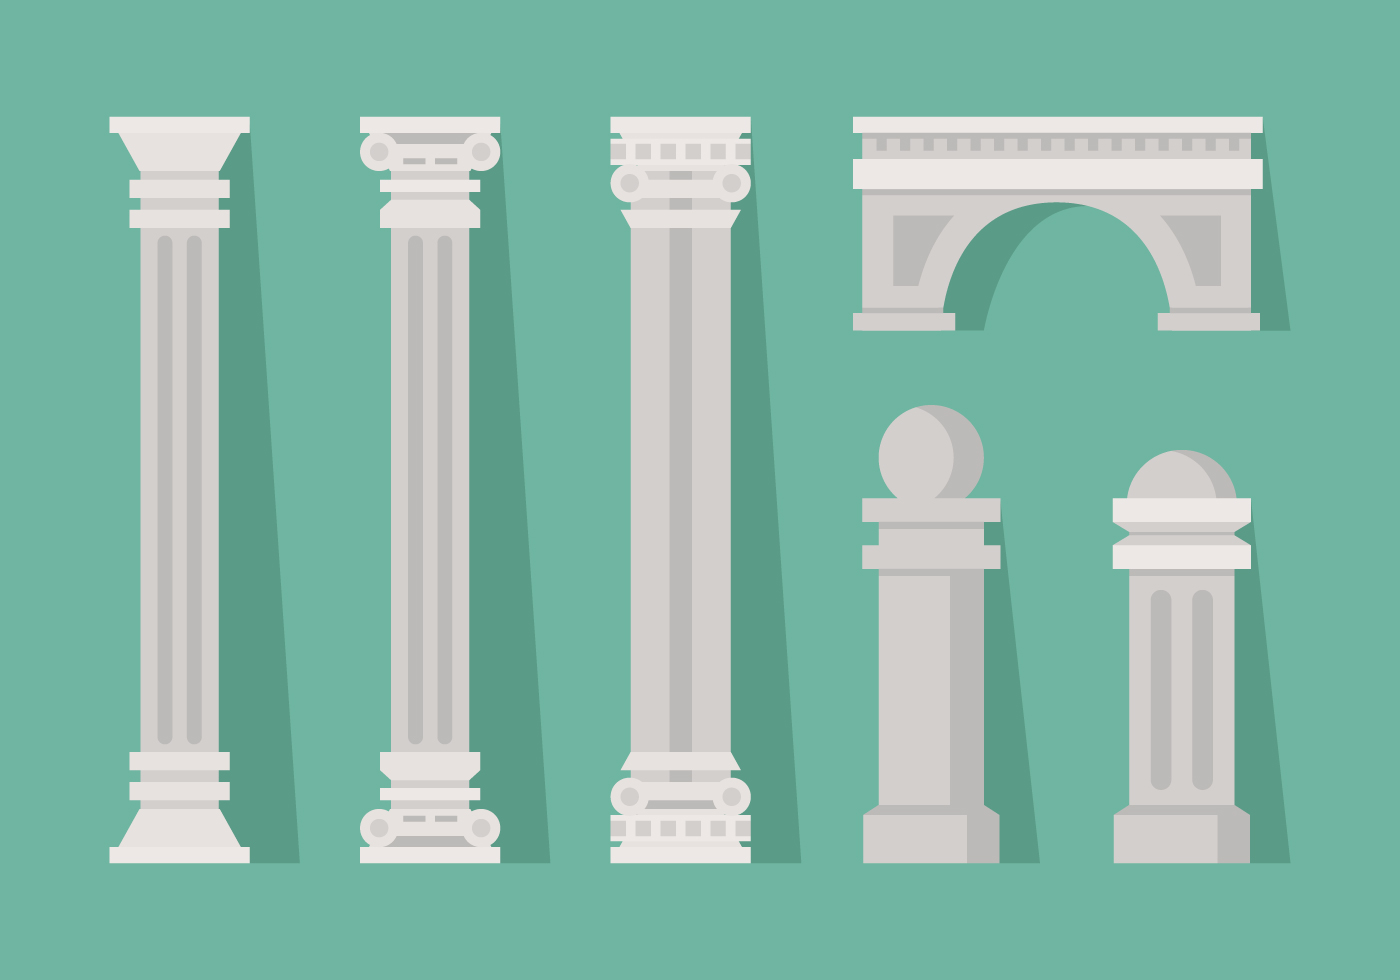 Vector Roman Pillar  Download Free Vector Art, Stock. Decorative Plaques. Houzz Living Room Furniture. Halloween Skeleton Decorations. Hotel Rooms Vegas. Kitchen Table Decoration Ideas. Kitchen Decor Cheap. Decorative Flags And Banners. Wholesale Decorative Bottles